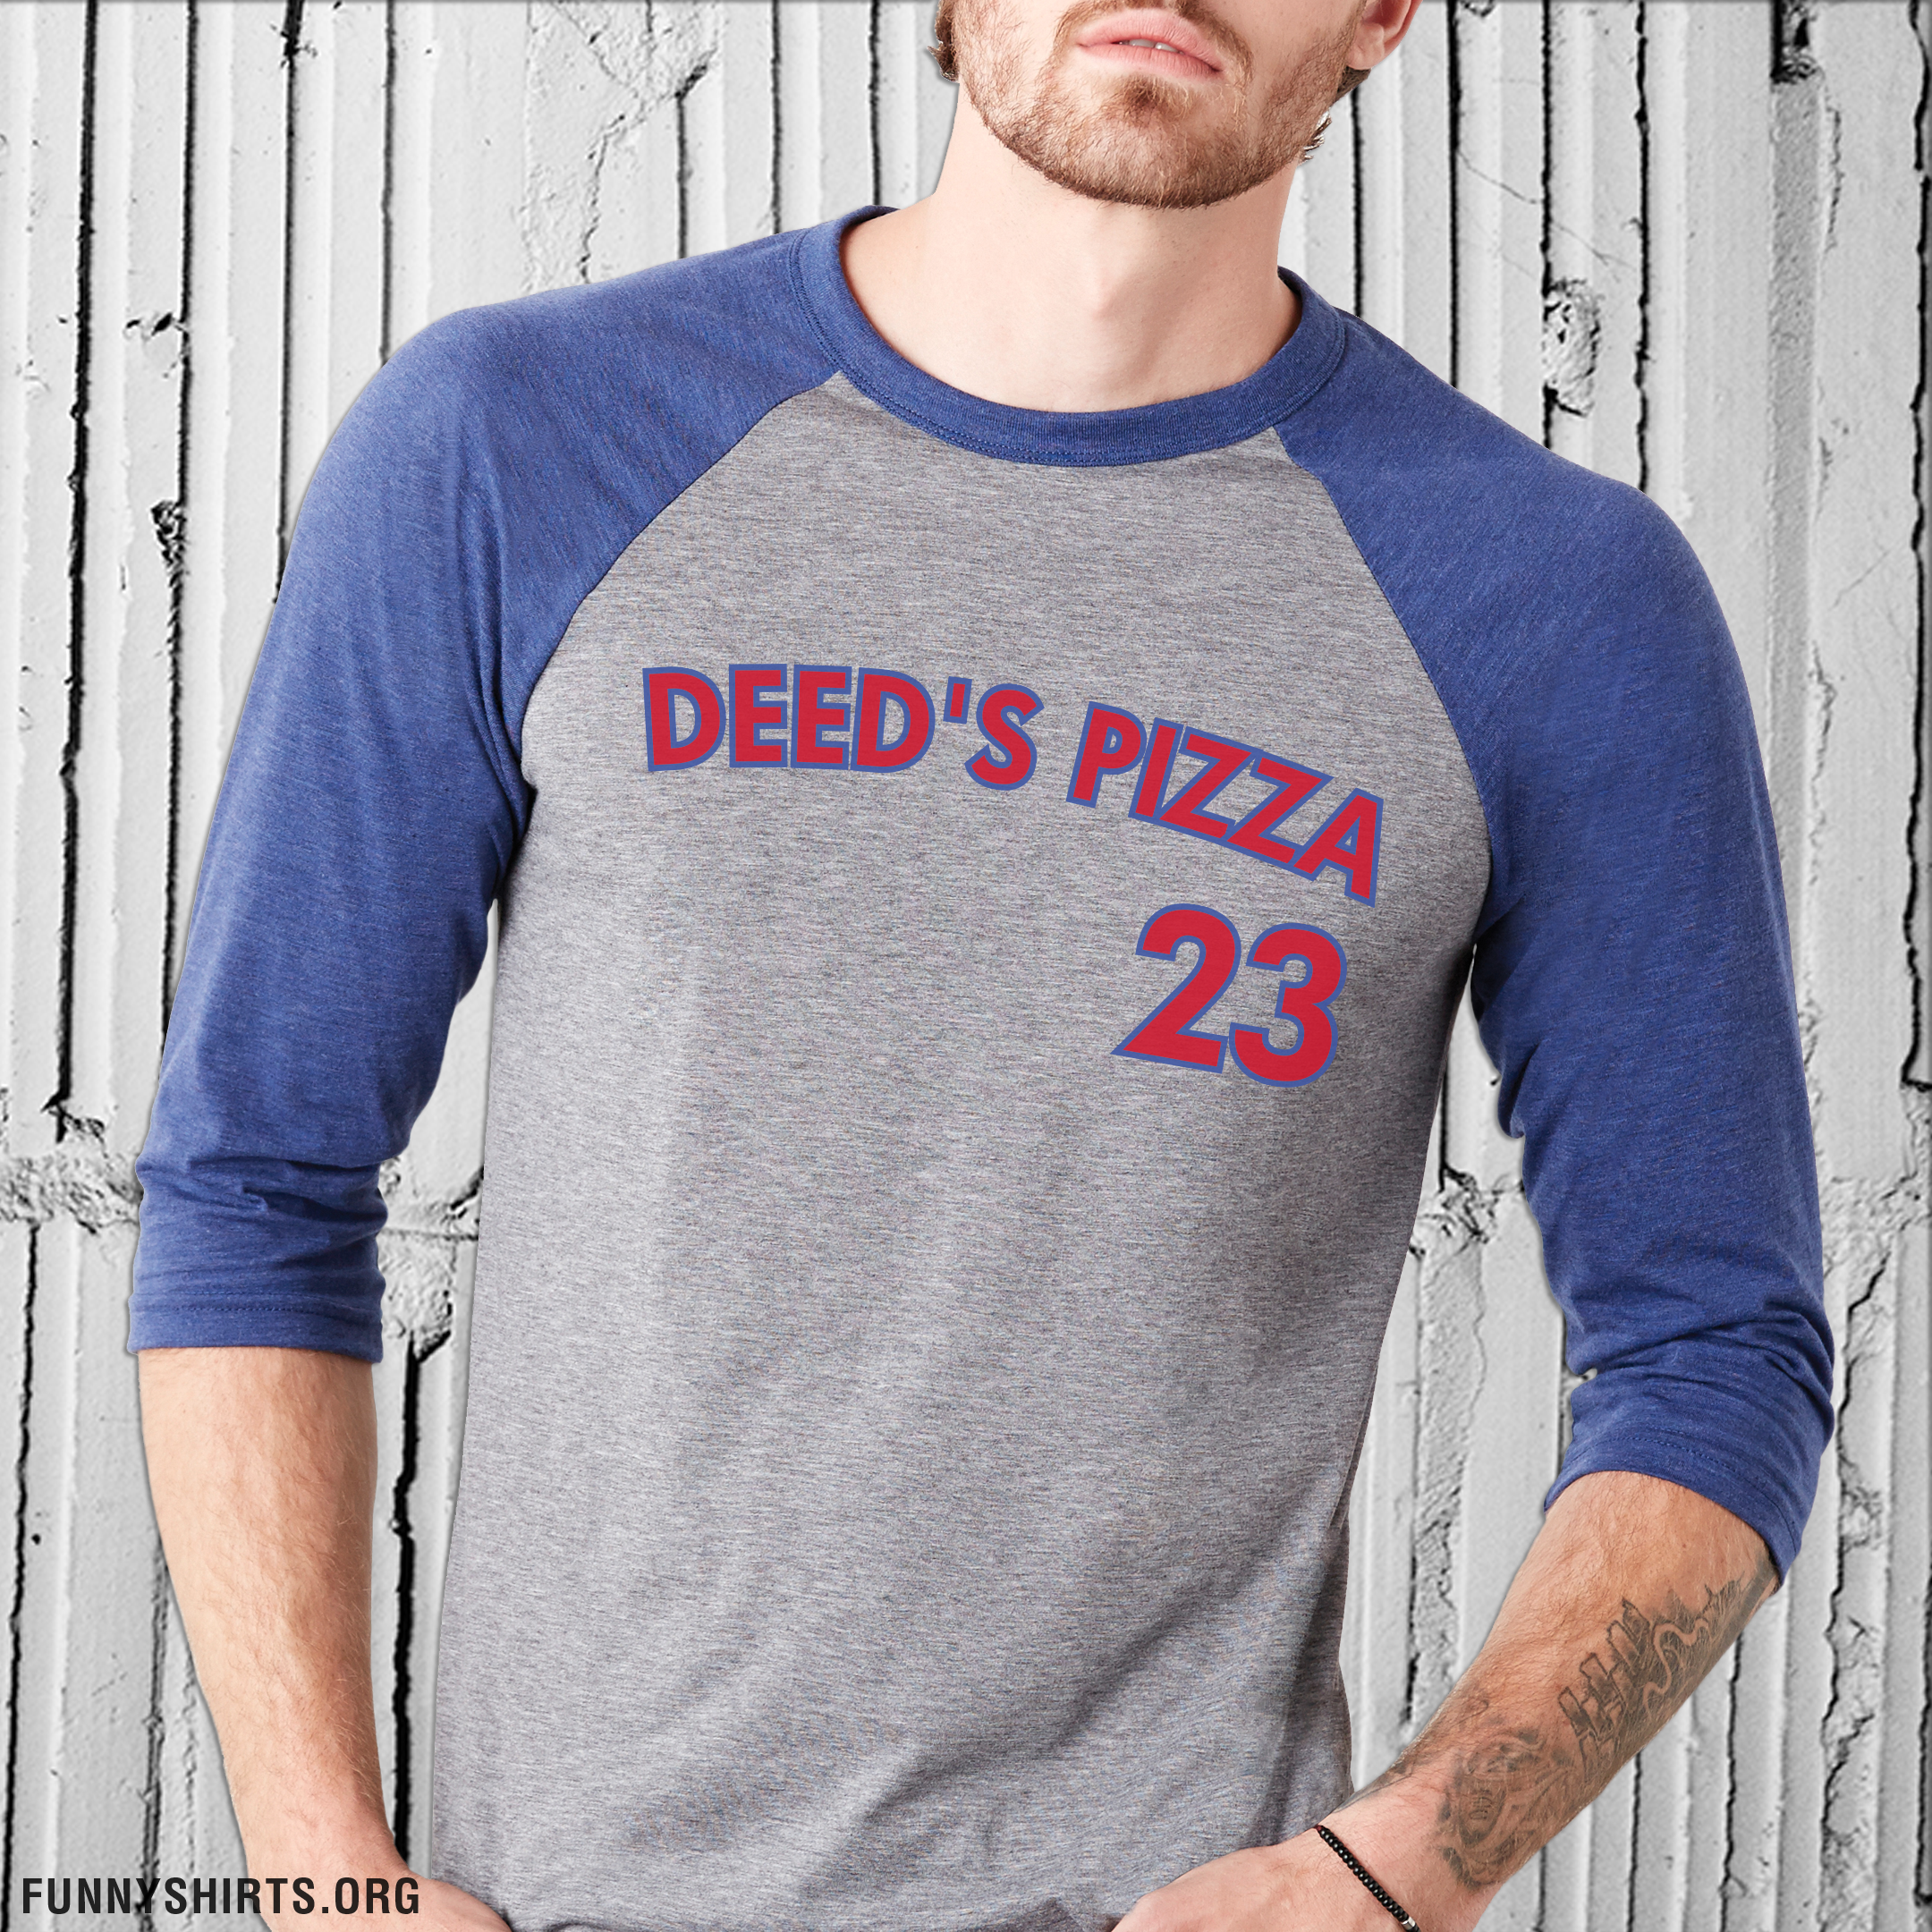 Deed's Pizza